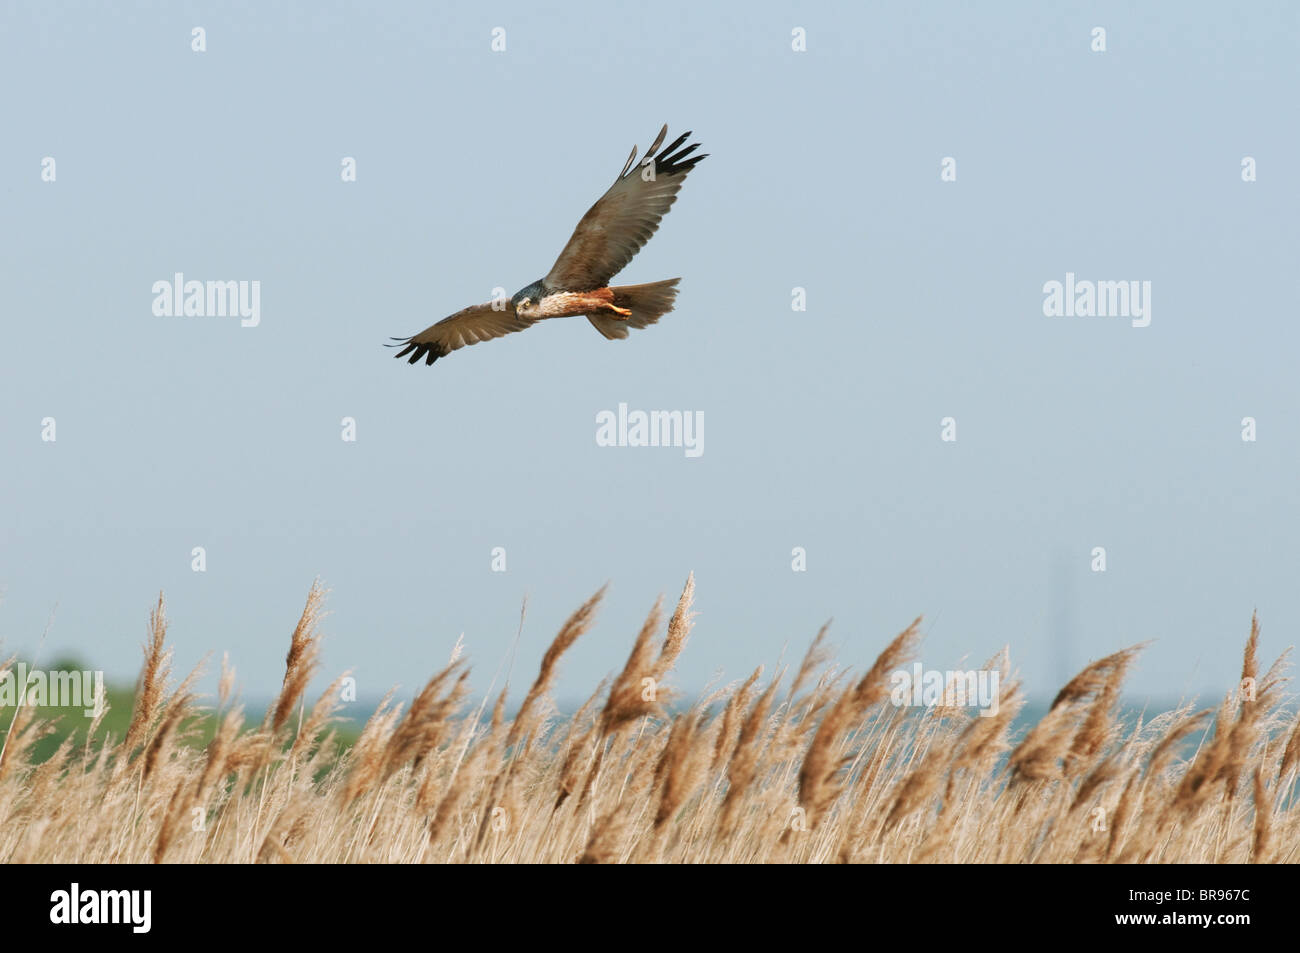 Marsh Harrier, Circus aeruginosus, adult male, in flight, over reedbed, North Kent Marshes, Kent, England. Stock Photo